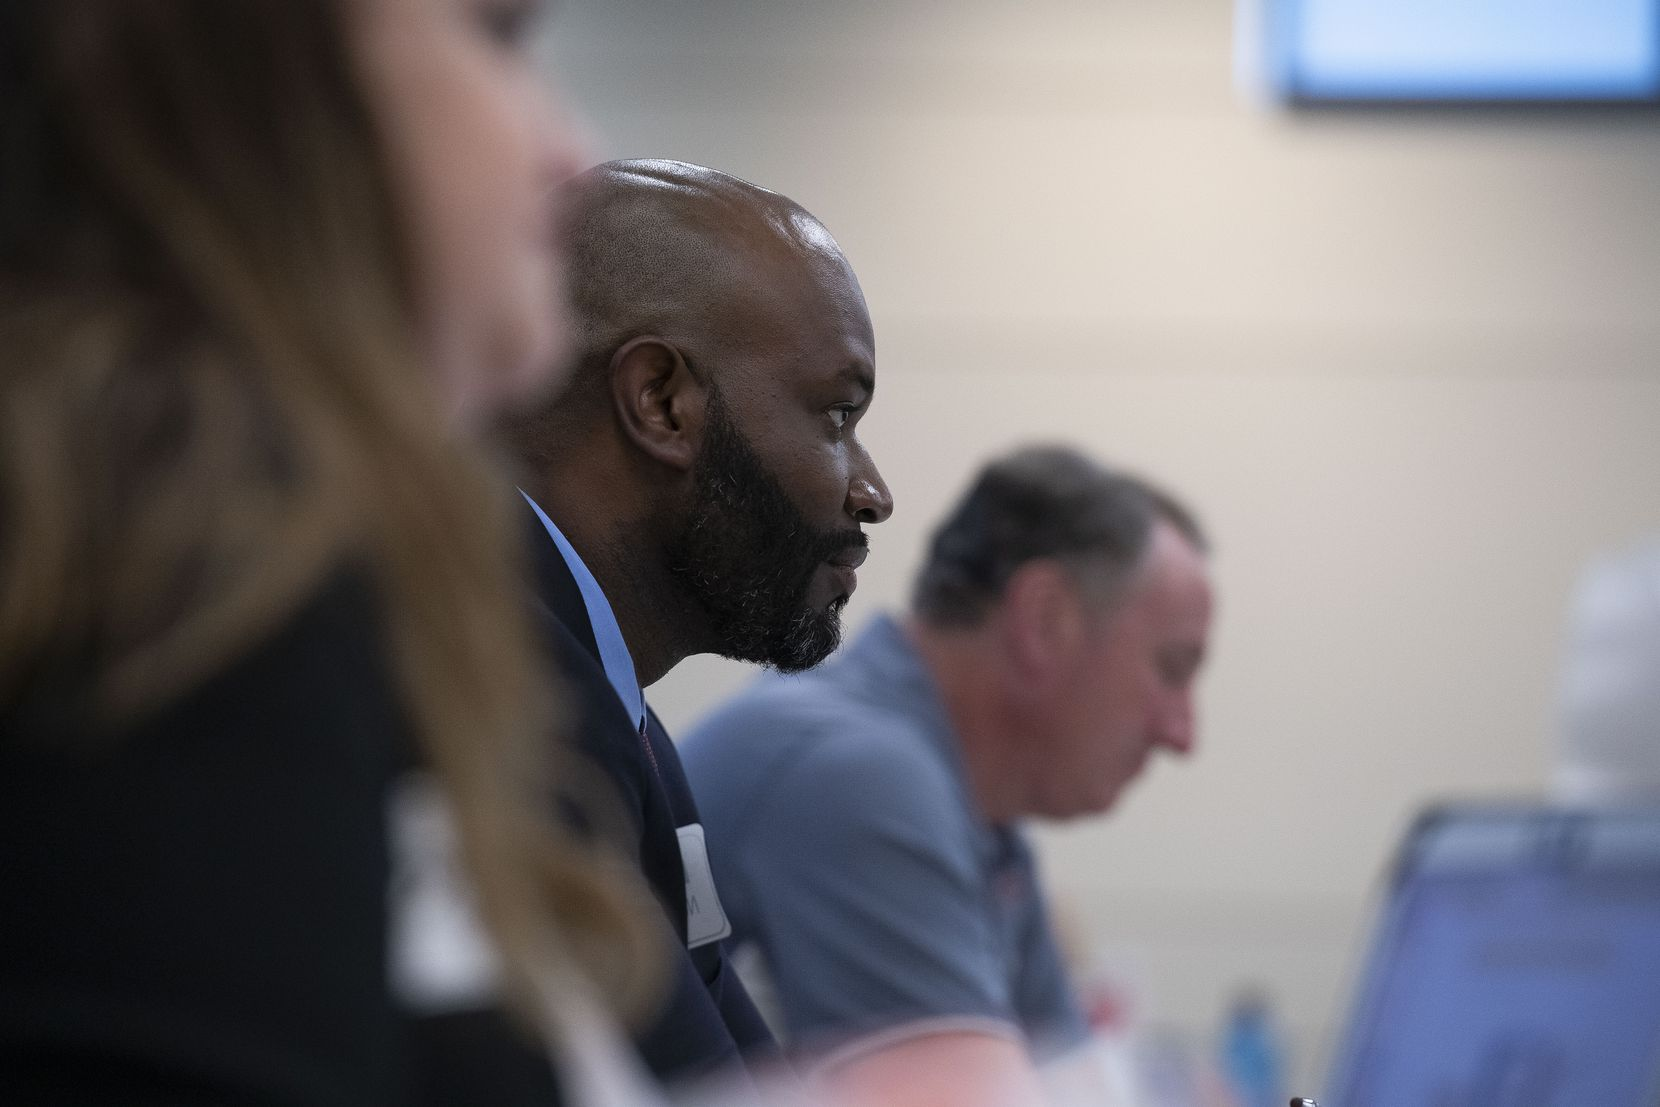 Daniel Norwood, Mesquite ISD social studies coordinator and Leadership Empowerment Team facilitator listens to discussion during one of the new group's meetings. The team, formed in 2020, hopes to work against cultural-, gender- and race-related obstacles to learning.